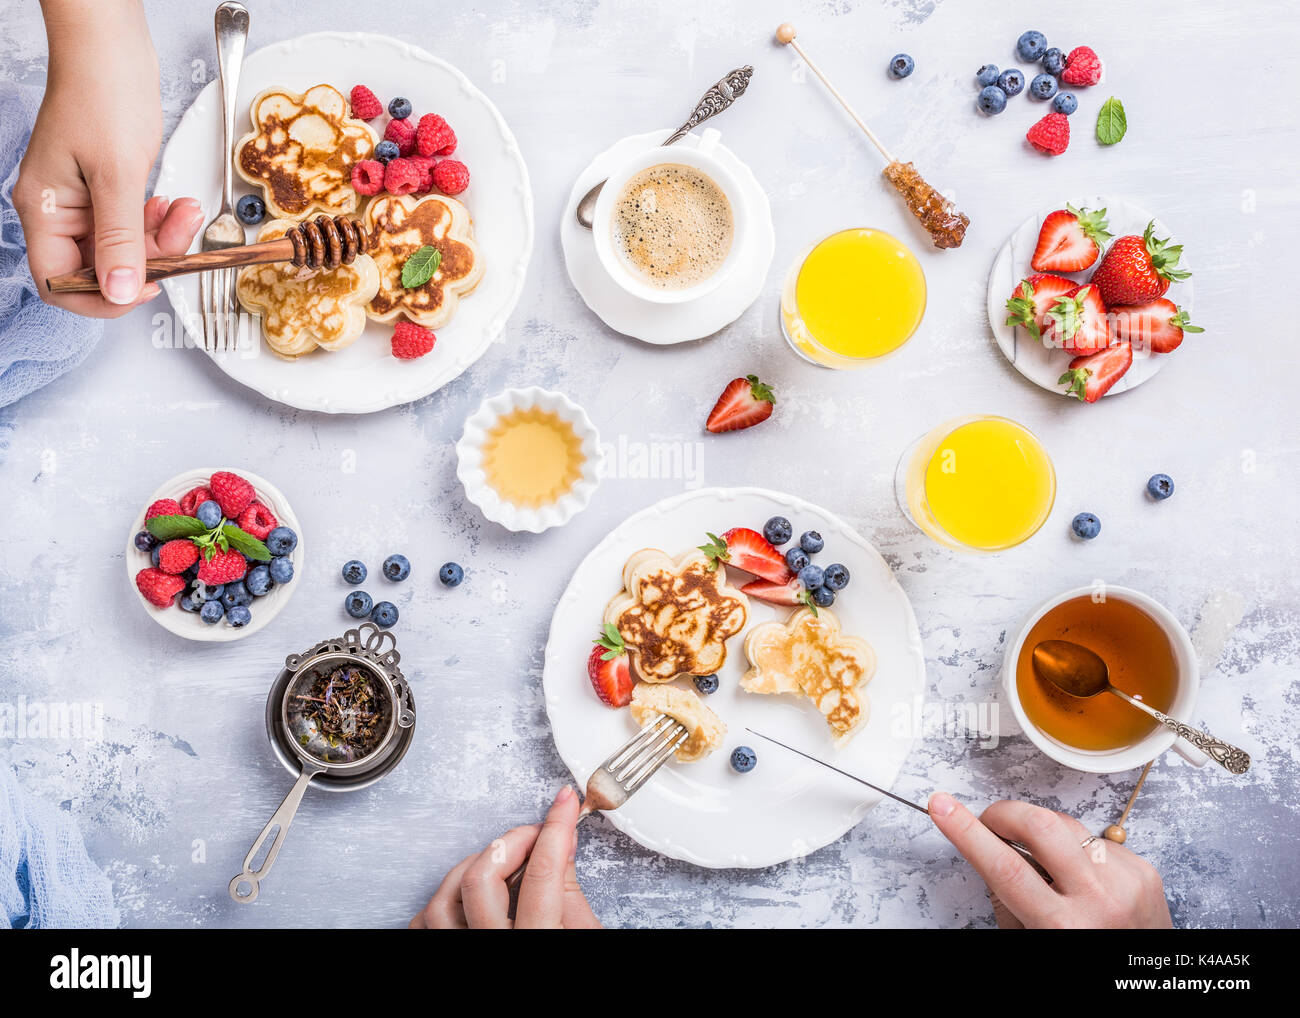 Flat lay with scotch pancakes in flower form, berries and honey with human hands. Healthy breakfast concept. Women eating together, top view. - Stock Image